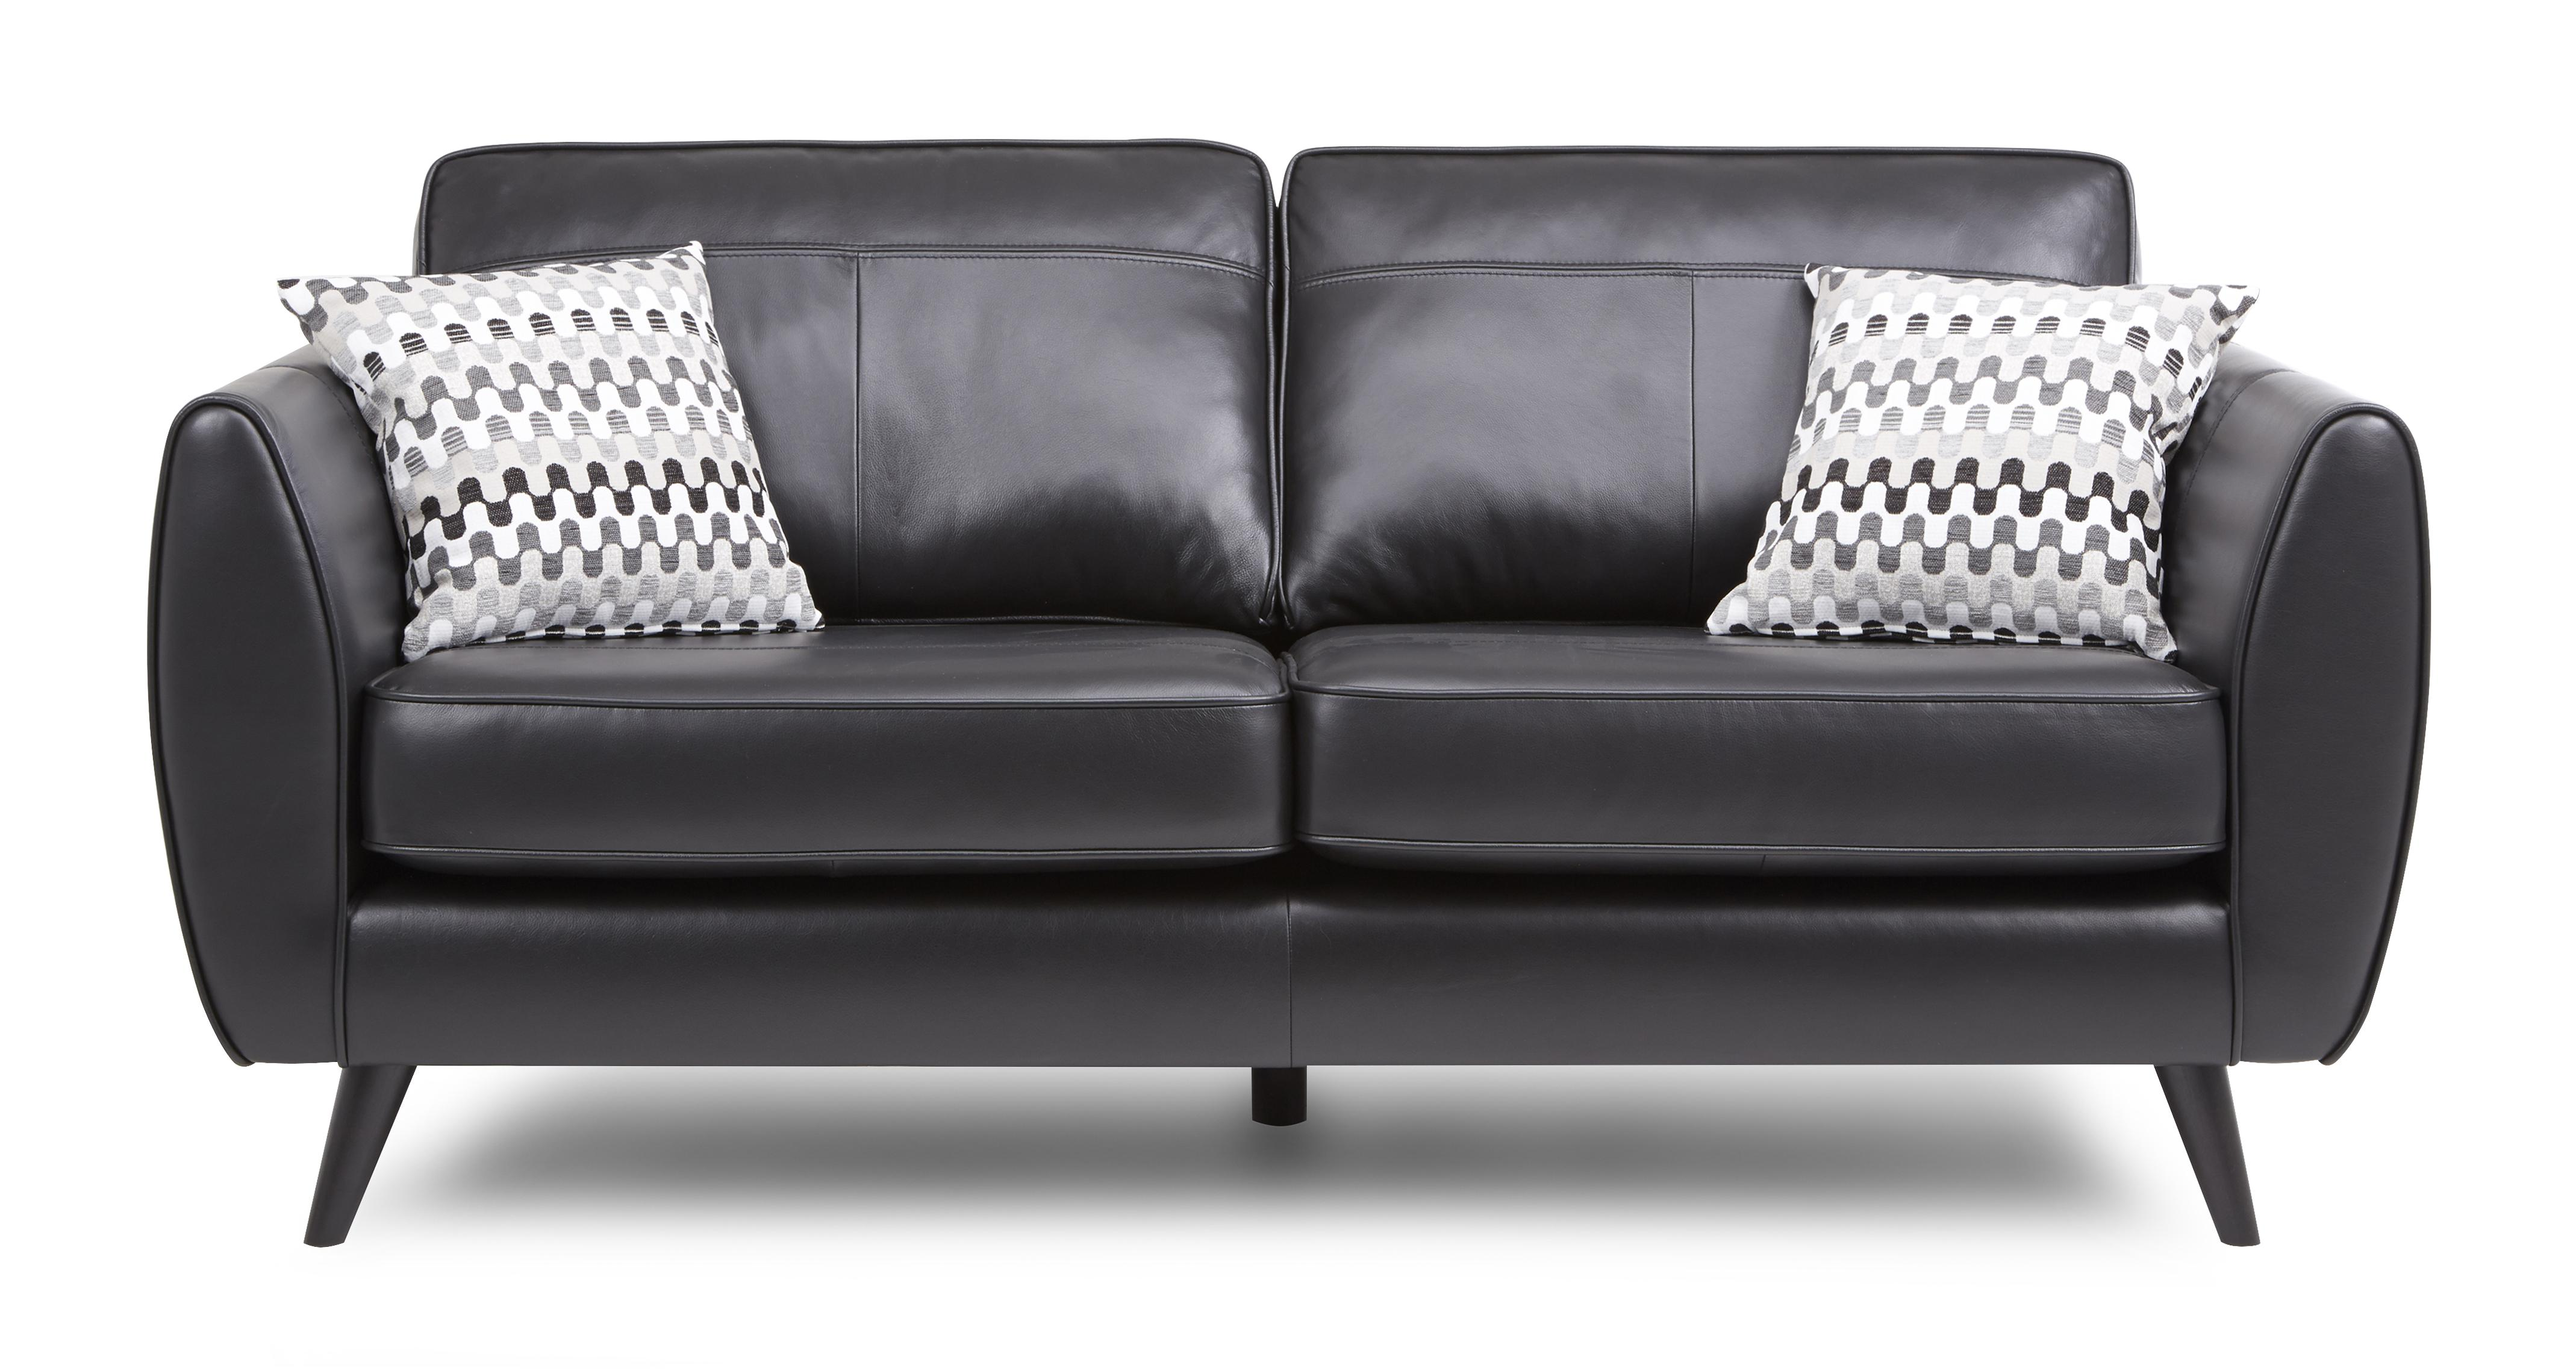 About The Aurora Leather 3 Seater Sofa